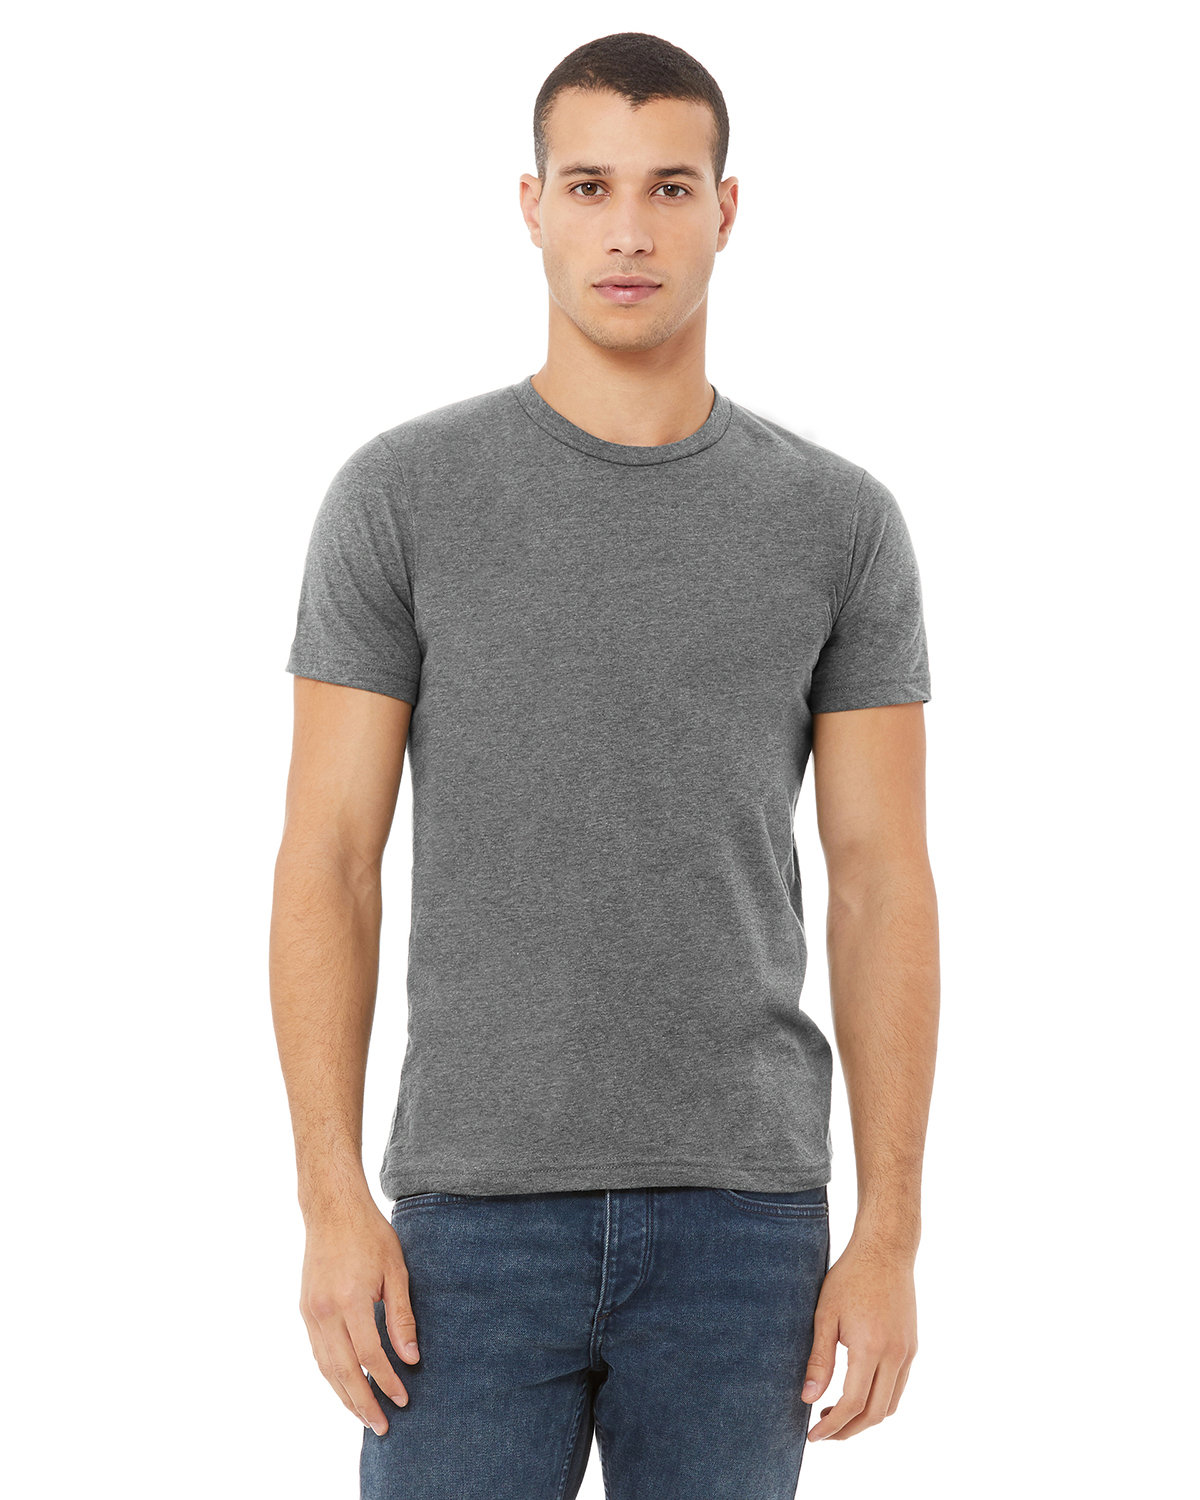 Bella + Canvas Unisex Made In The USA Jersey T-Shirt DEEP HEATHER